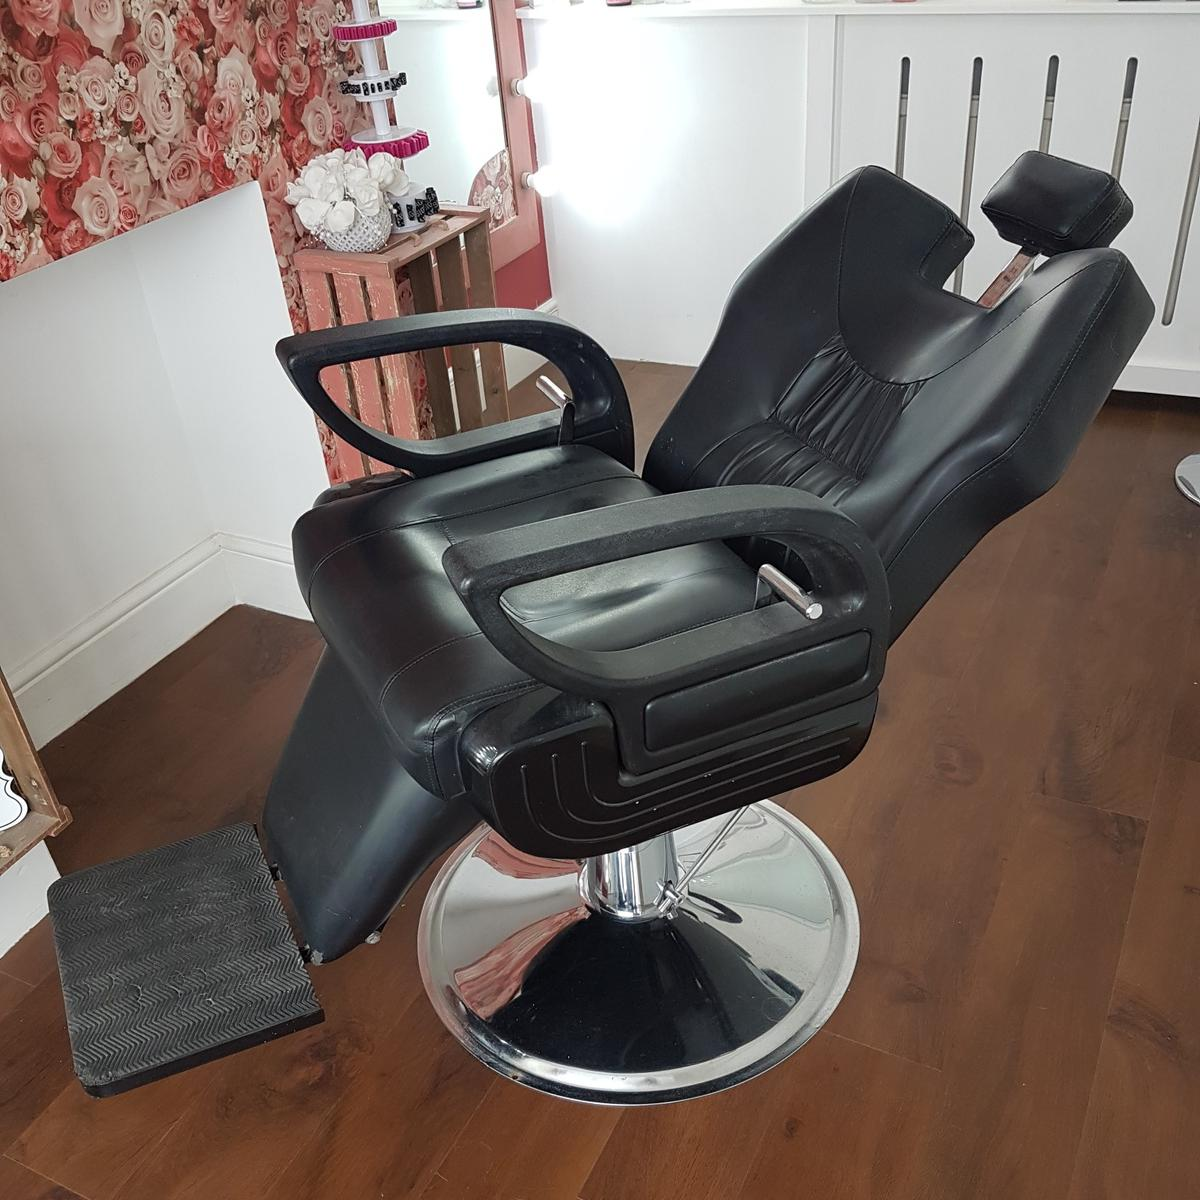 Enjoyable Salon Hair Beauty Barber Brows Chair Recliner Gmtry Best Dining Table And Chair Ideas Images Gmtryco